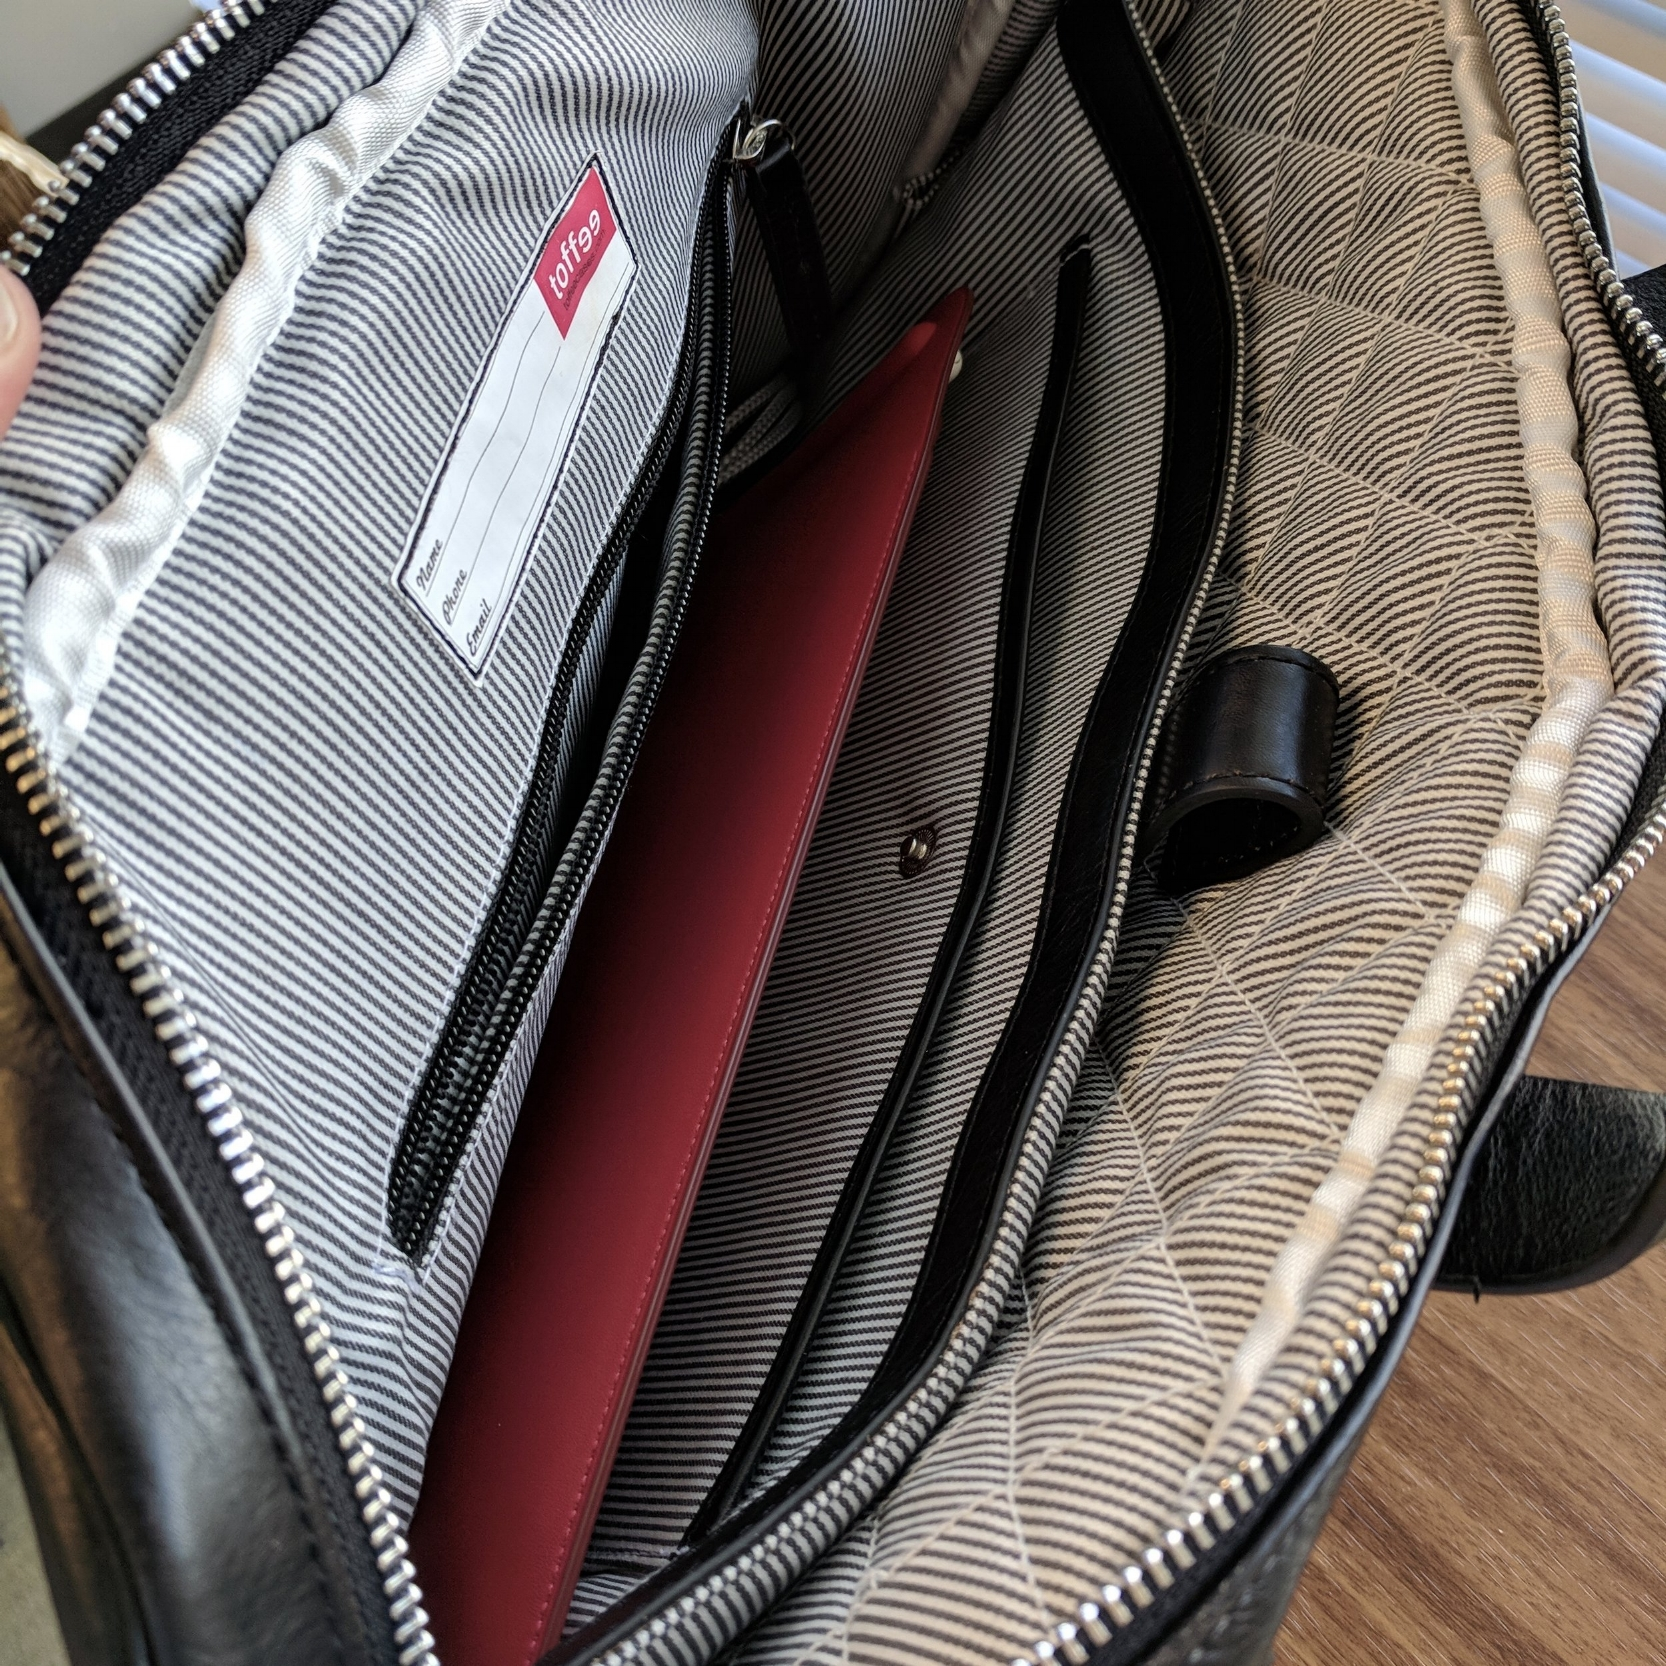 """The interior of the Toffee Lincoln, from left to right: a deep zippered pocket; the main compartment holding my 10.5 inch iPad in leather case, for scale; a smaller """"tablet pocket,"""" which is large enough to hold the 10.5 inch iPad in its keyboard cover; and a 15-inch laptop slot, with quilted padding. There is a leather strap to secure both the laptop and tablet."""